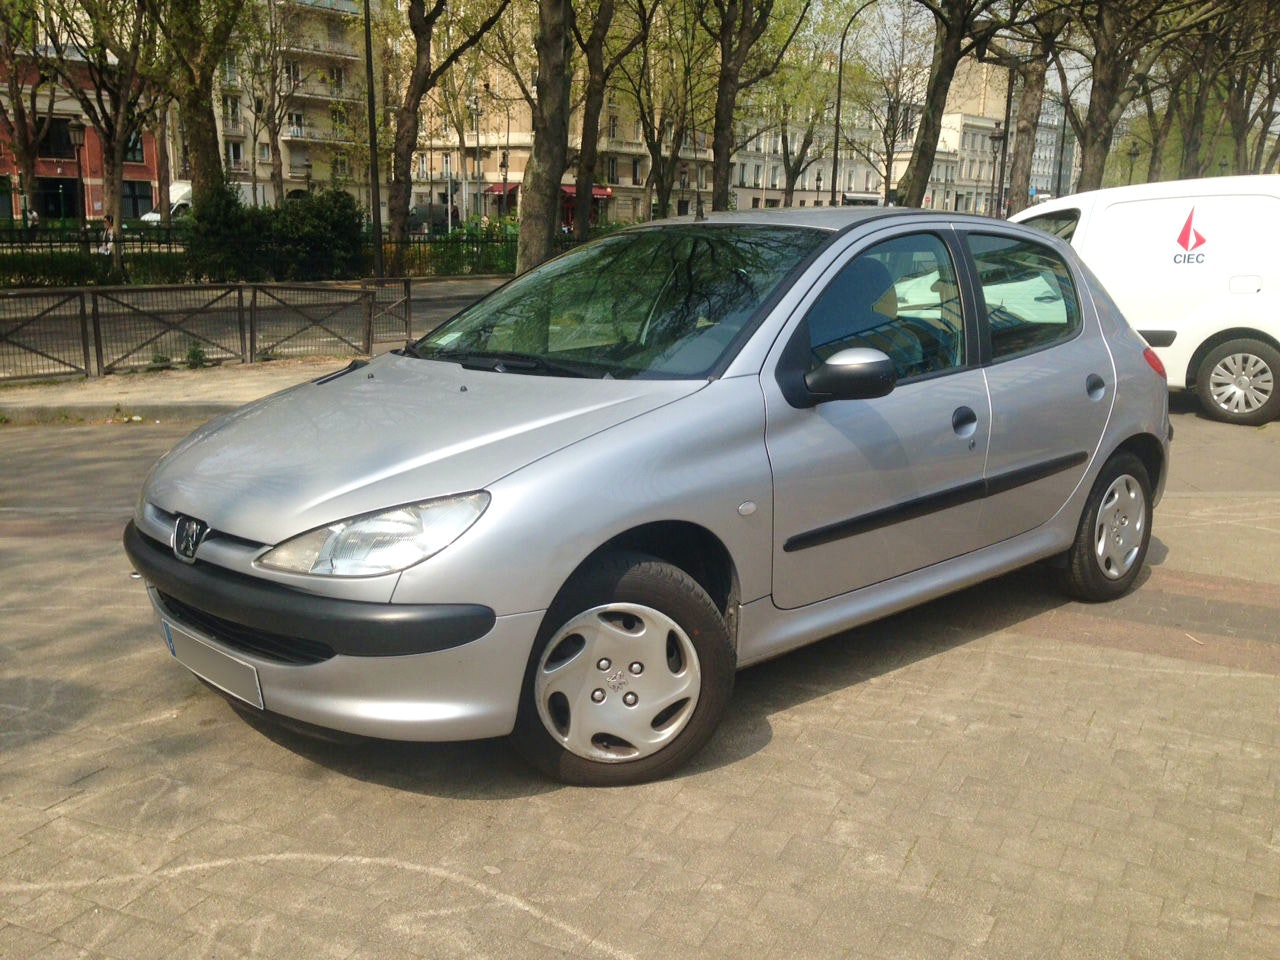 Peugeot 206, 2000, Essence - Citadine Paris (75)